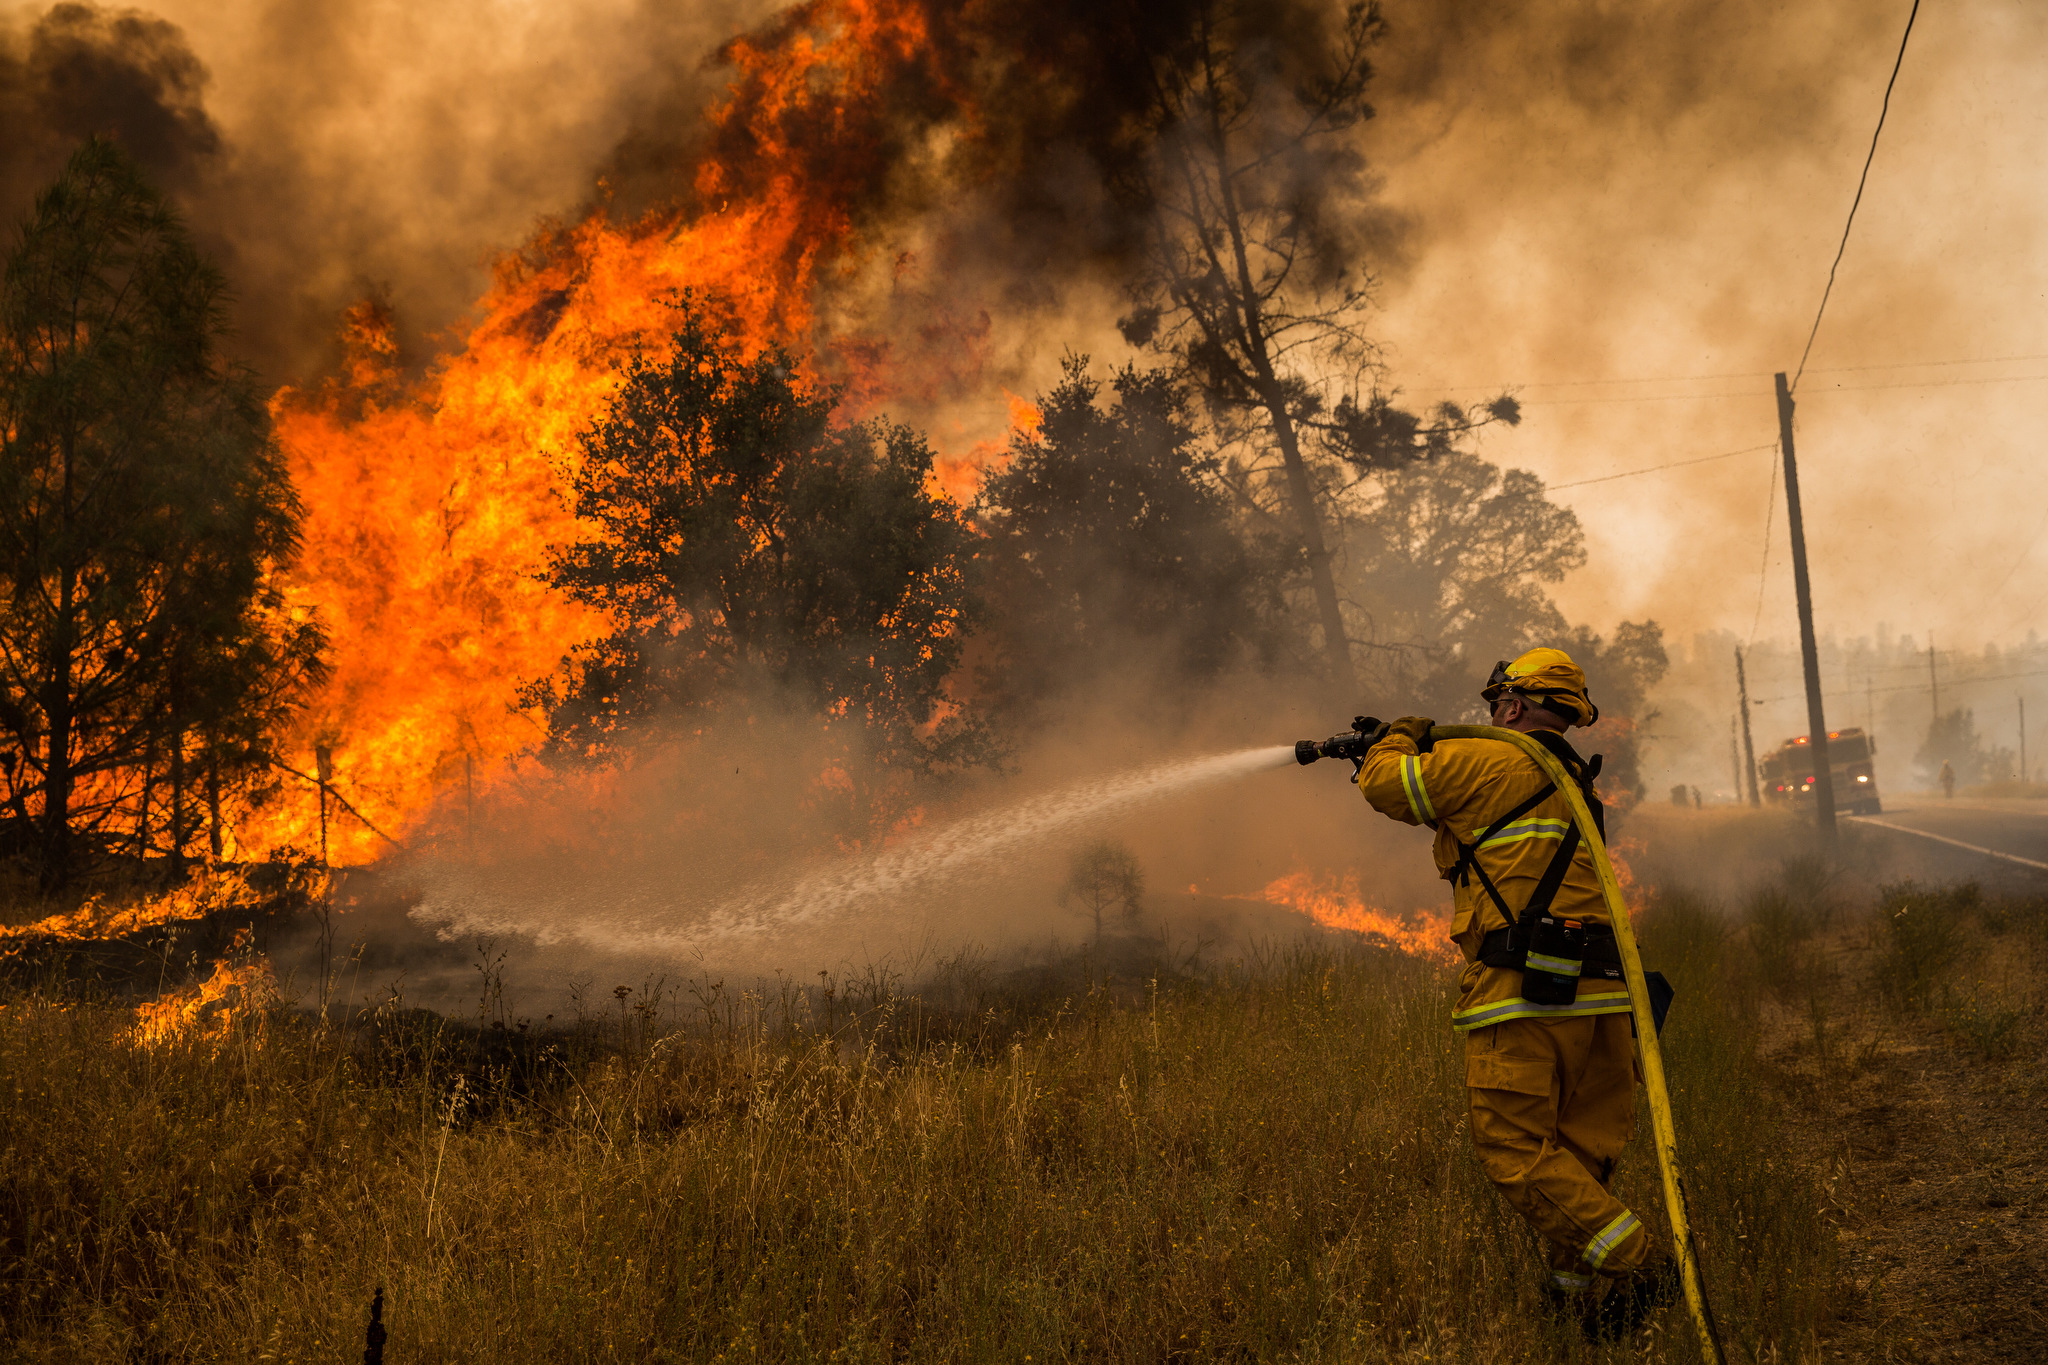 A firefighter battles a spot fire on the Rocky Fire in Lake County, California on July 30, 2015. As of August 5, the fire had consumed 69,600 acres and is one of 23 wildfires burning in California.